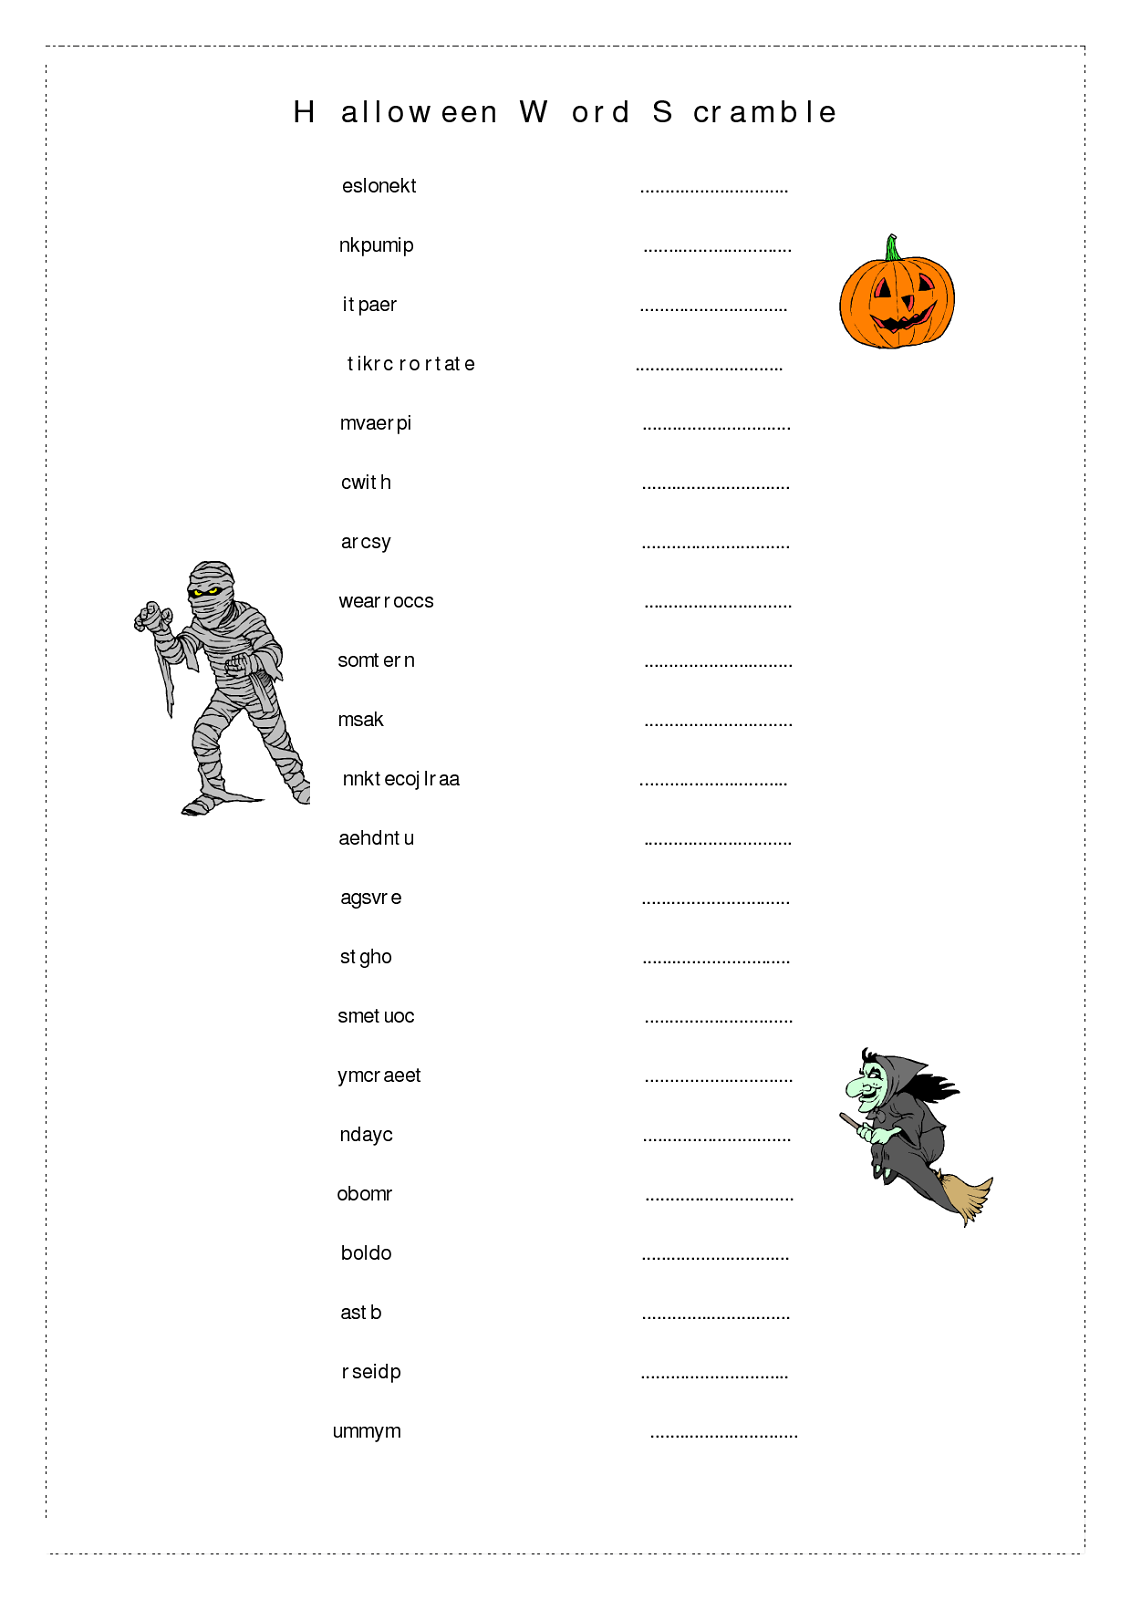 word-scramble-worksheet-halloween